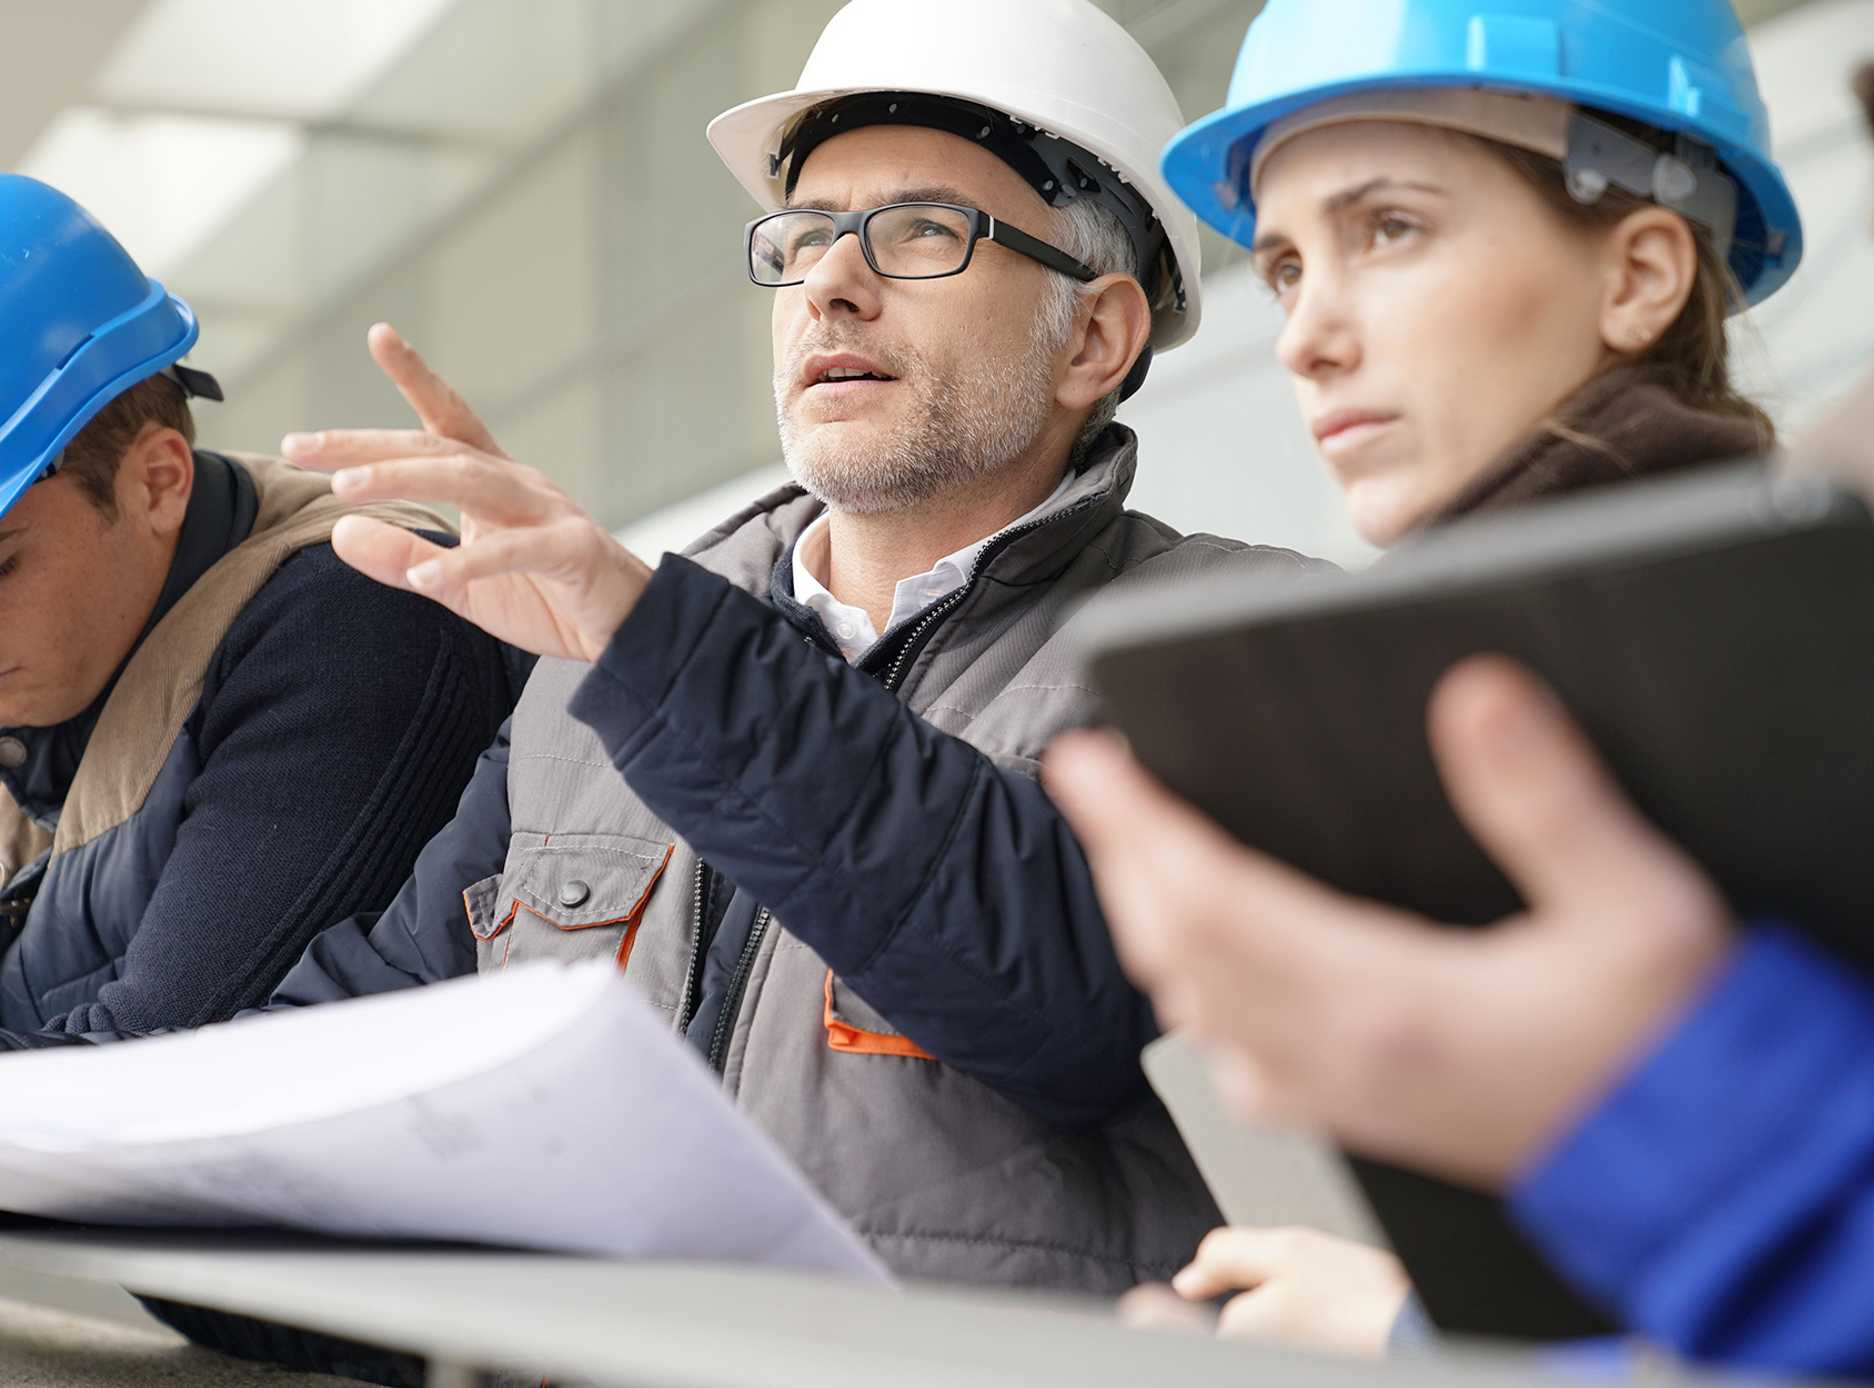 Accruent - Products - Construction Project Management Software   Lx Projects - Hero